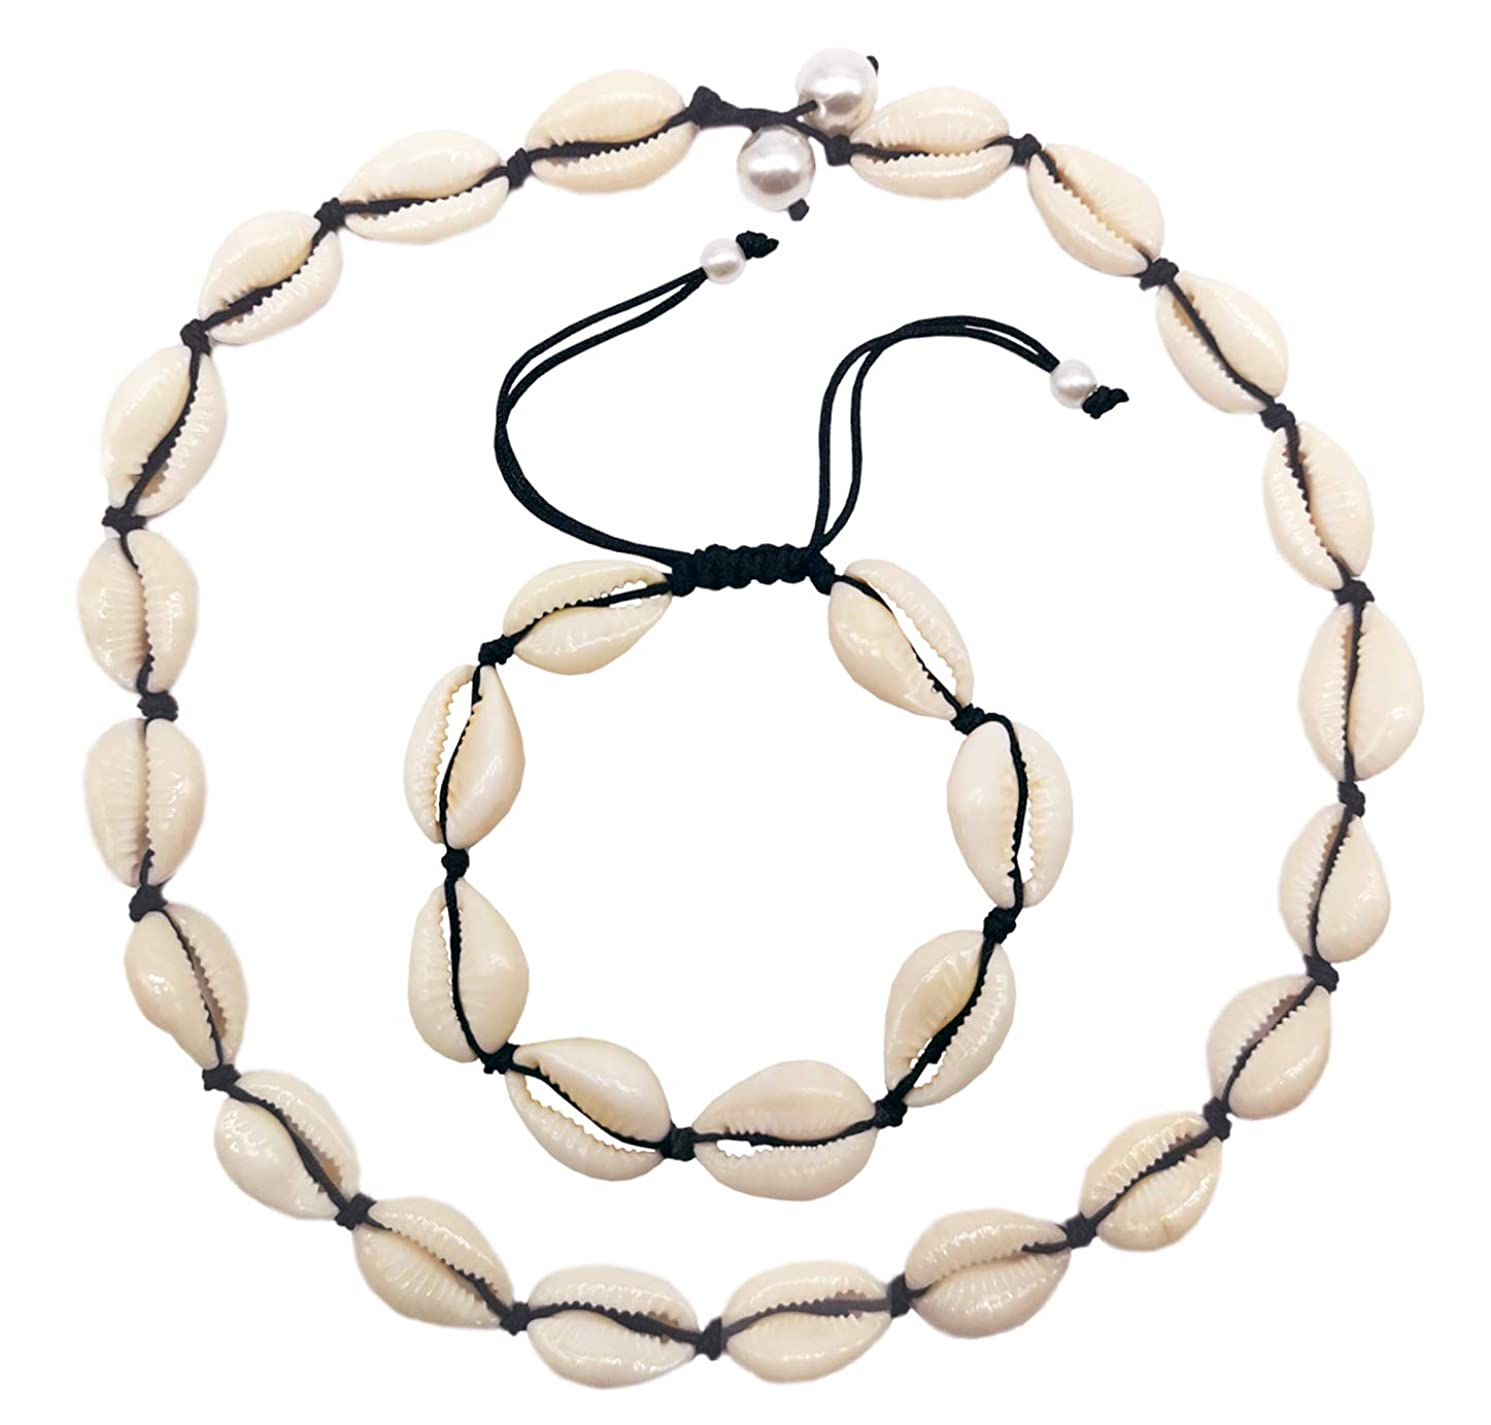 LOHZAQ Natural Sea Shell Beads Handmade Hawaii Wakiki Beach Choker Necklace Adjustable Bracelet Anklet for Girls Ladies